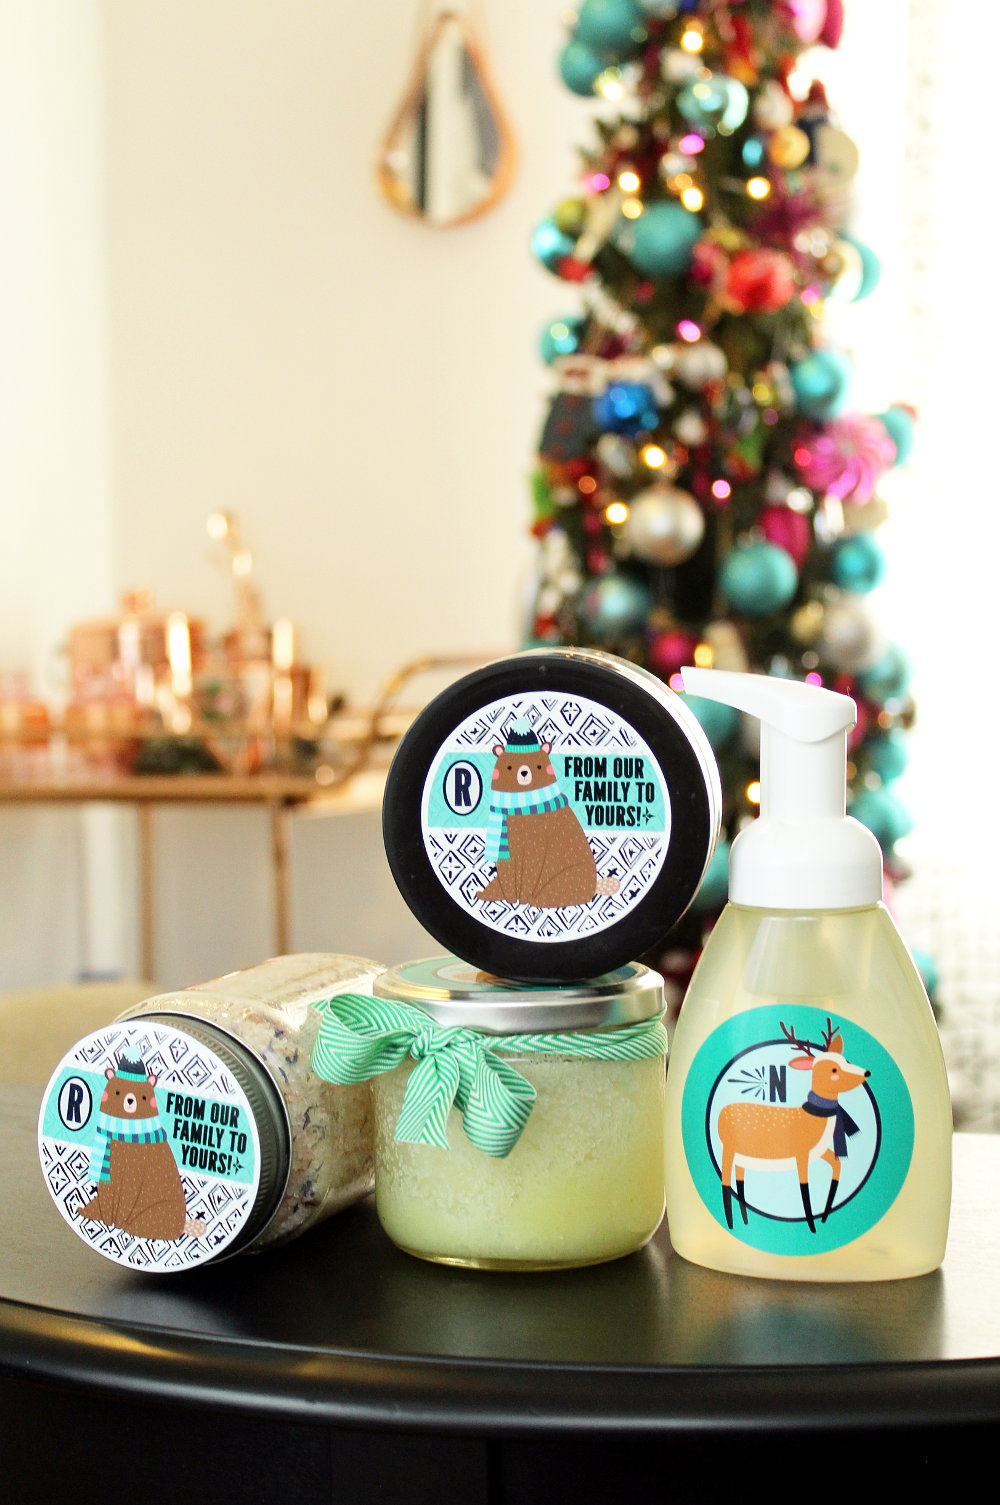 Easy Homemade Holiday Gifts! Save money and personalize your holiday gift giving this year with these easy homemade holiday gifts with personalized sticker labels from StickerYou! #diy #homemade #gift #giftideas #holidays #personalized #diygifts #homemadegifts #ad